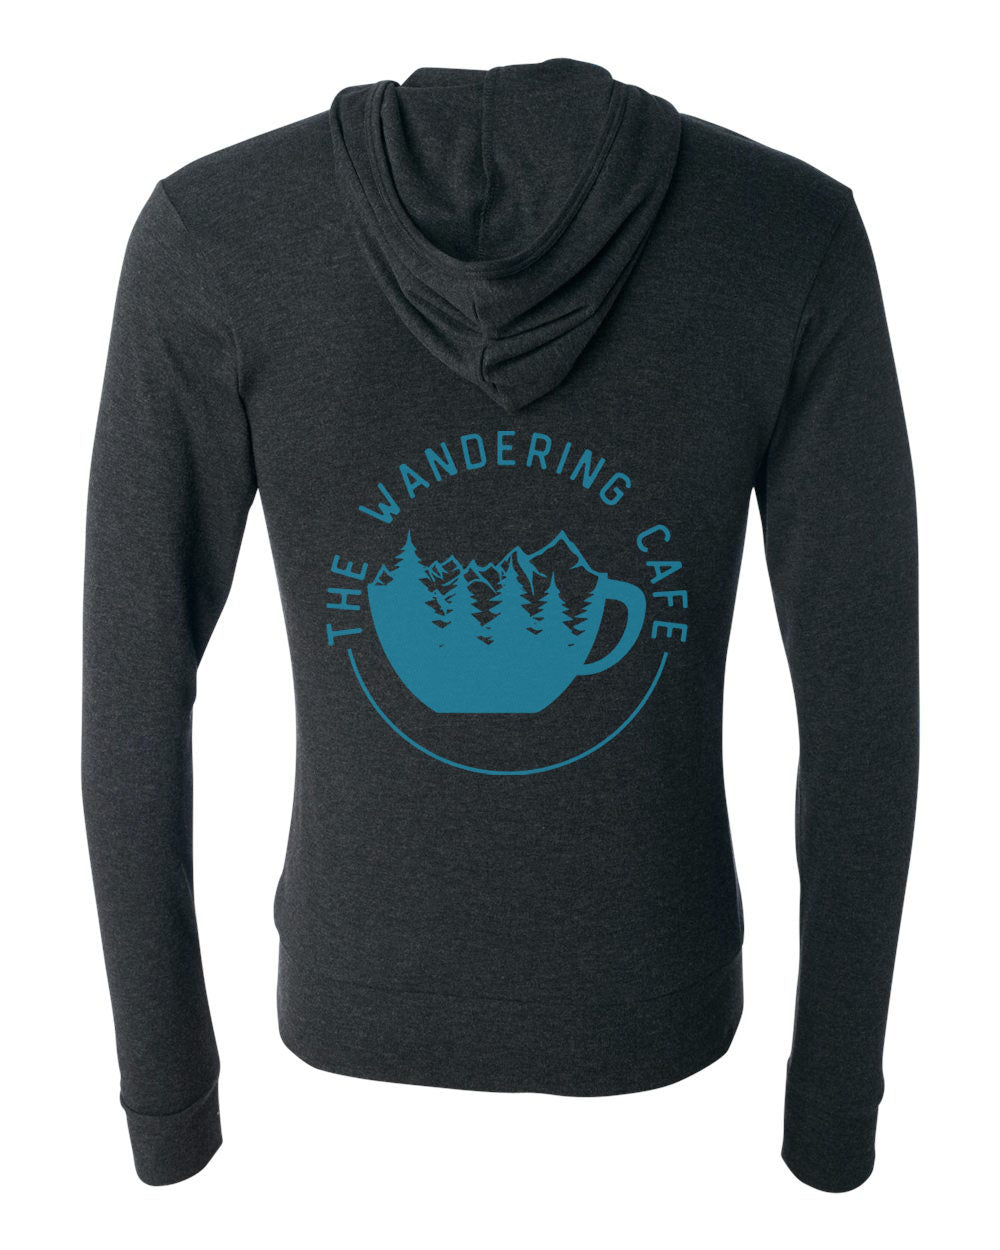 The Wandering Cafe Lightweight Zip Hoodie